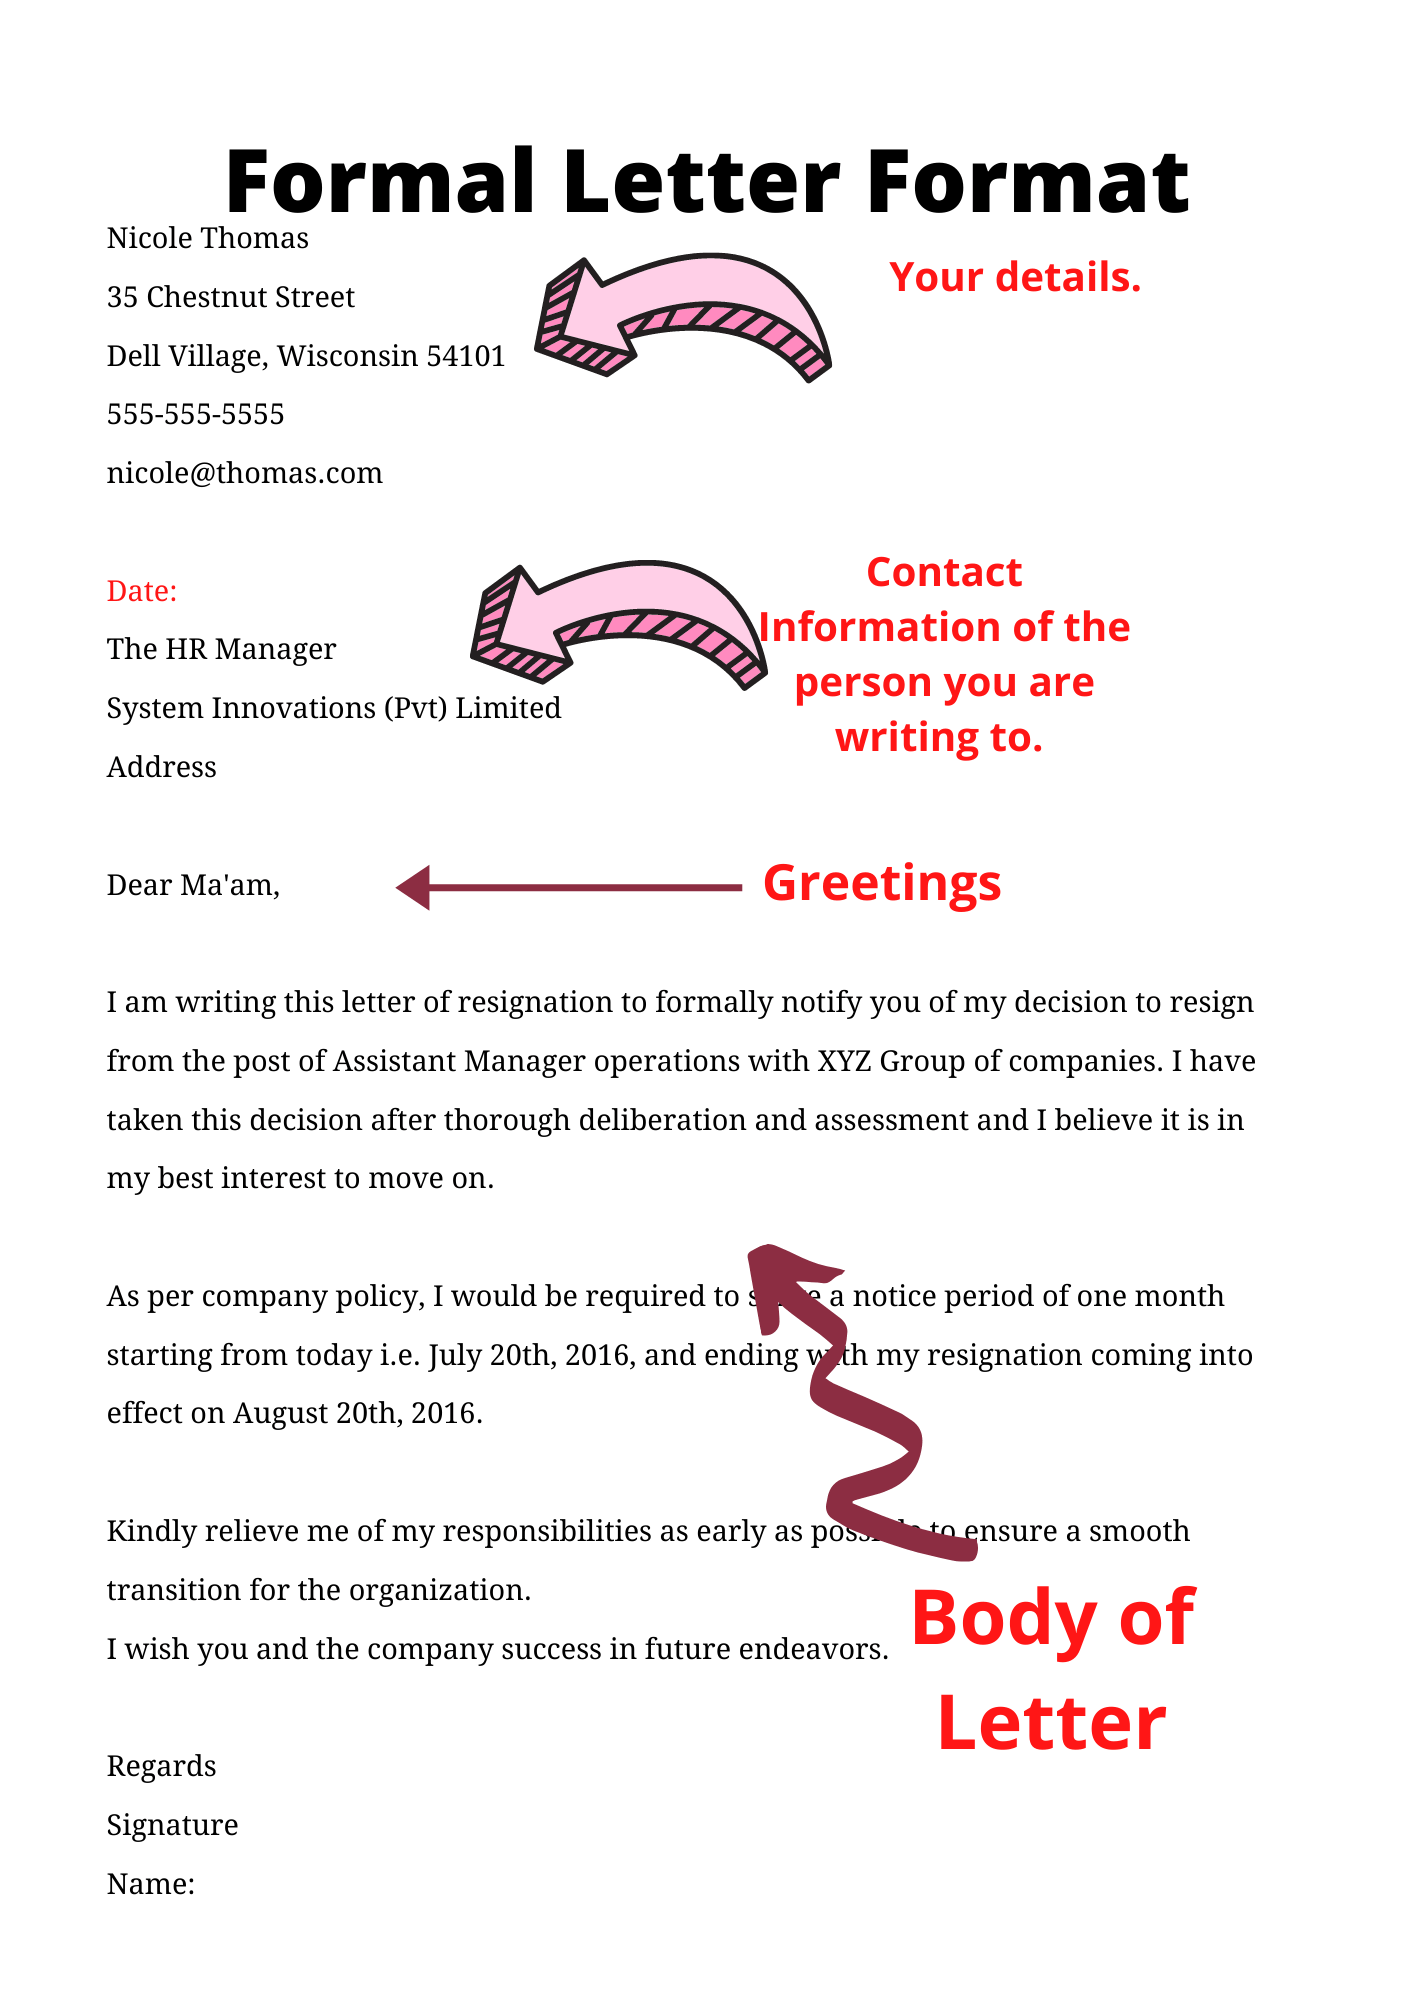 How to Write a Formal Letter  Step by Step Guide  Formats & Samples